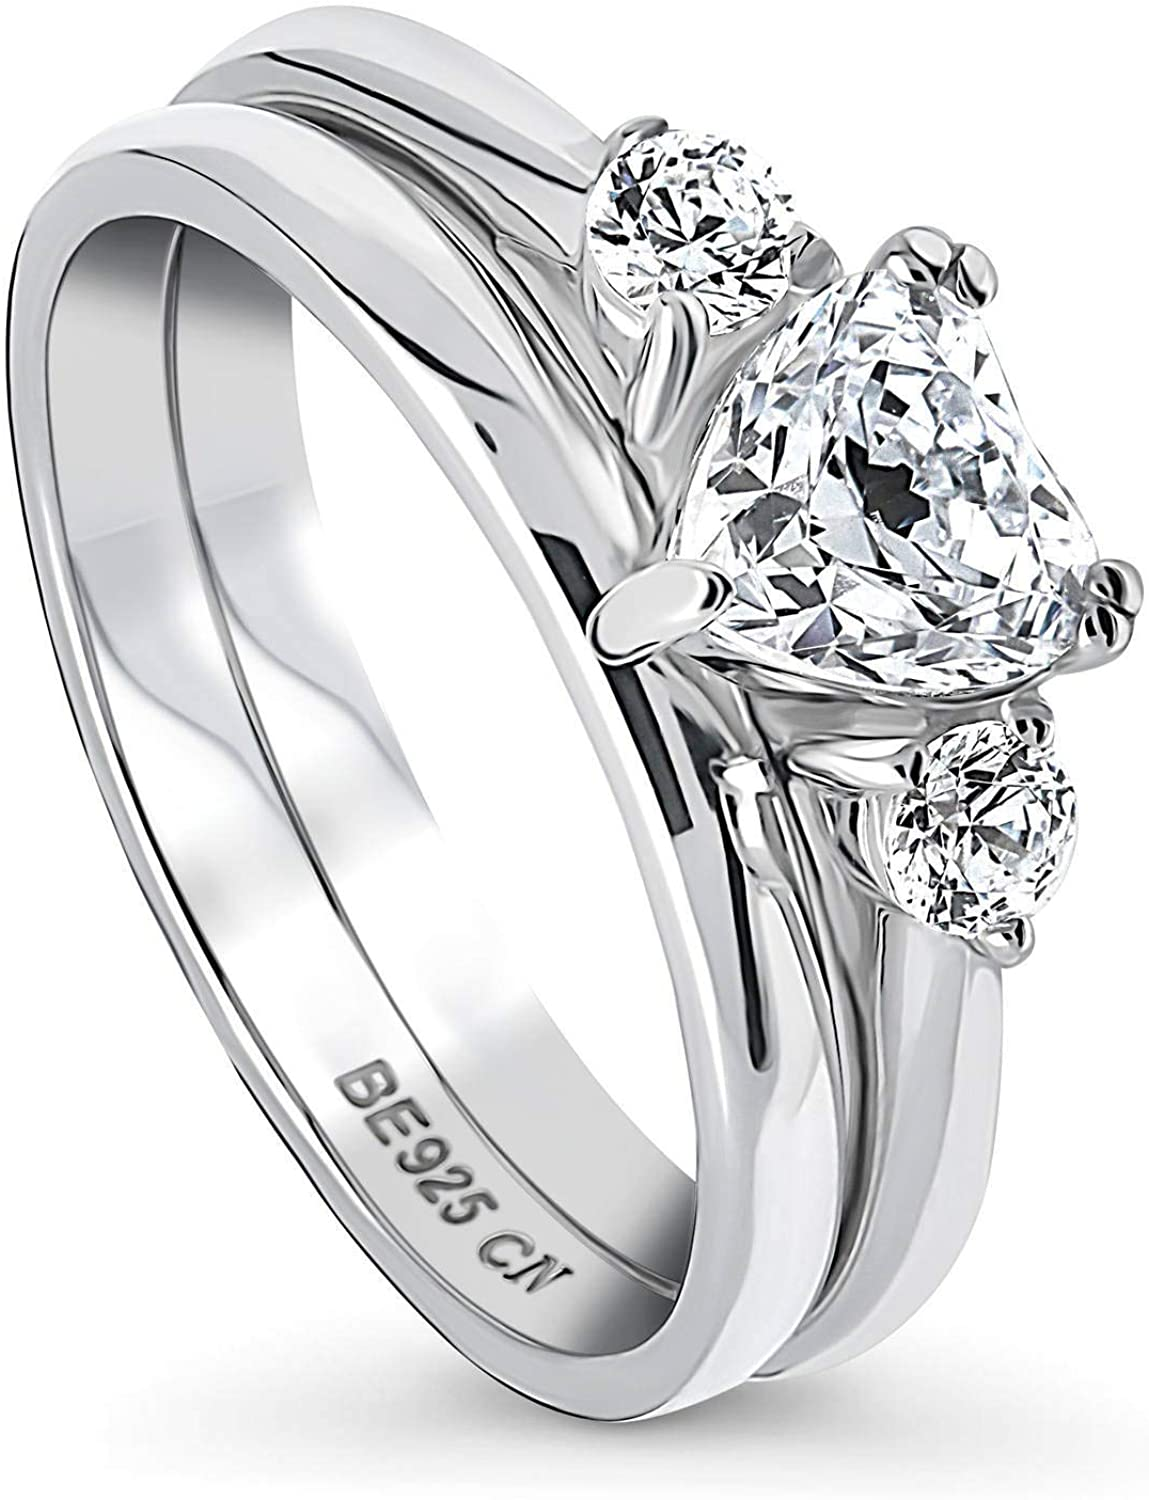 BERRICLE Rhodium Plated Sterling Silver 3-Stone Anniversary Engagement Wedding Ring Set Made with Swarovski Zirconia Heart Shaped 0.96 CTW